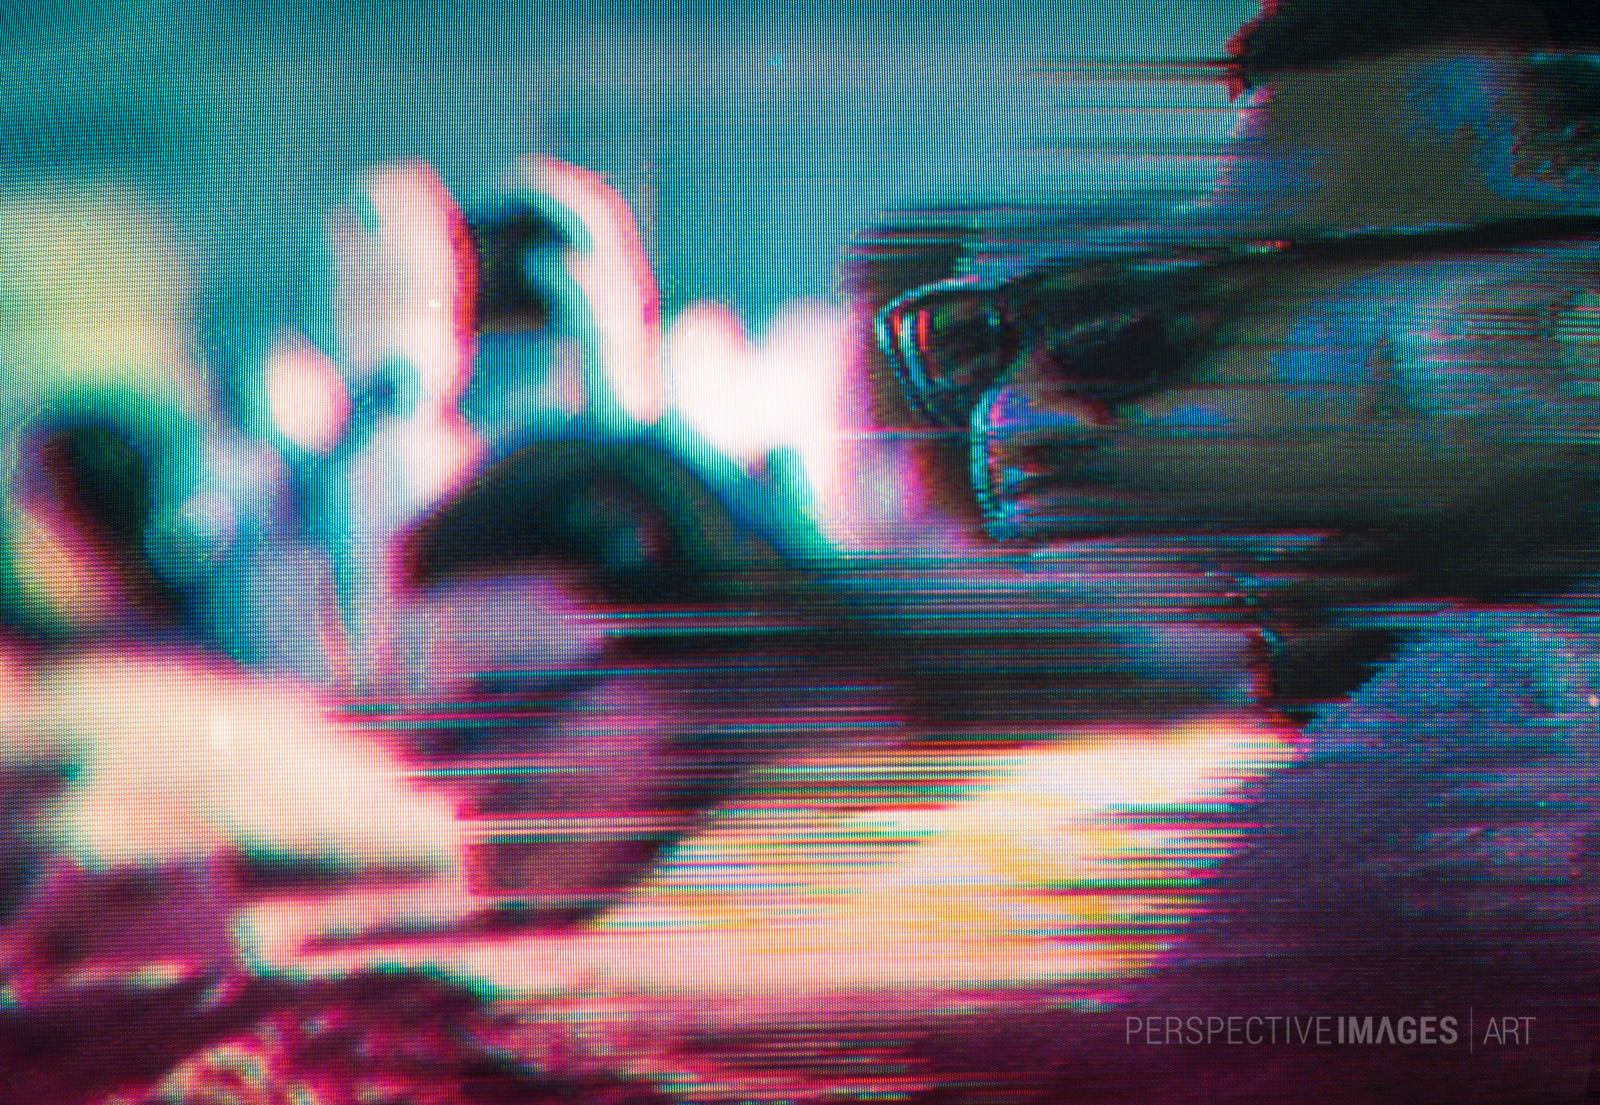 Getting to Know You - Glitch art